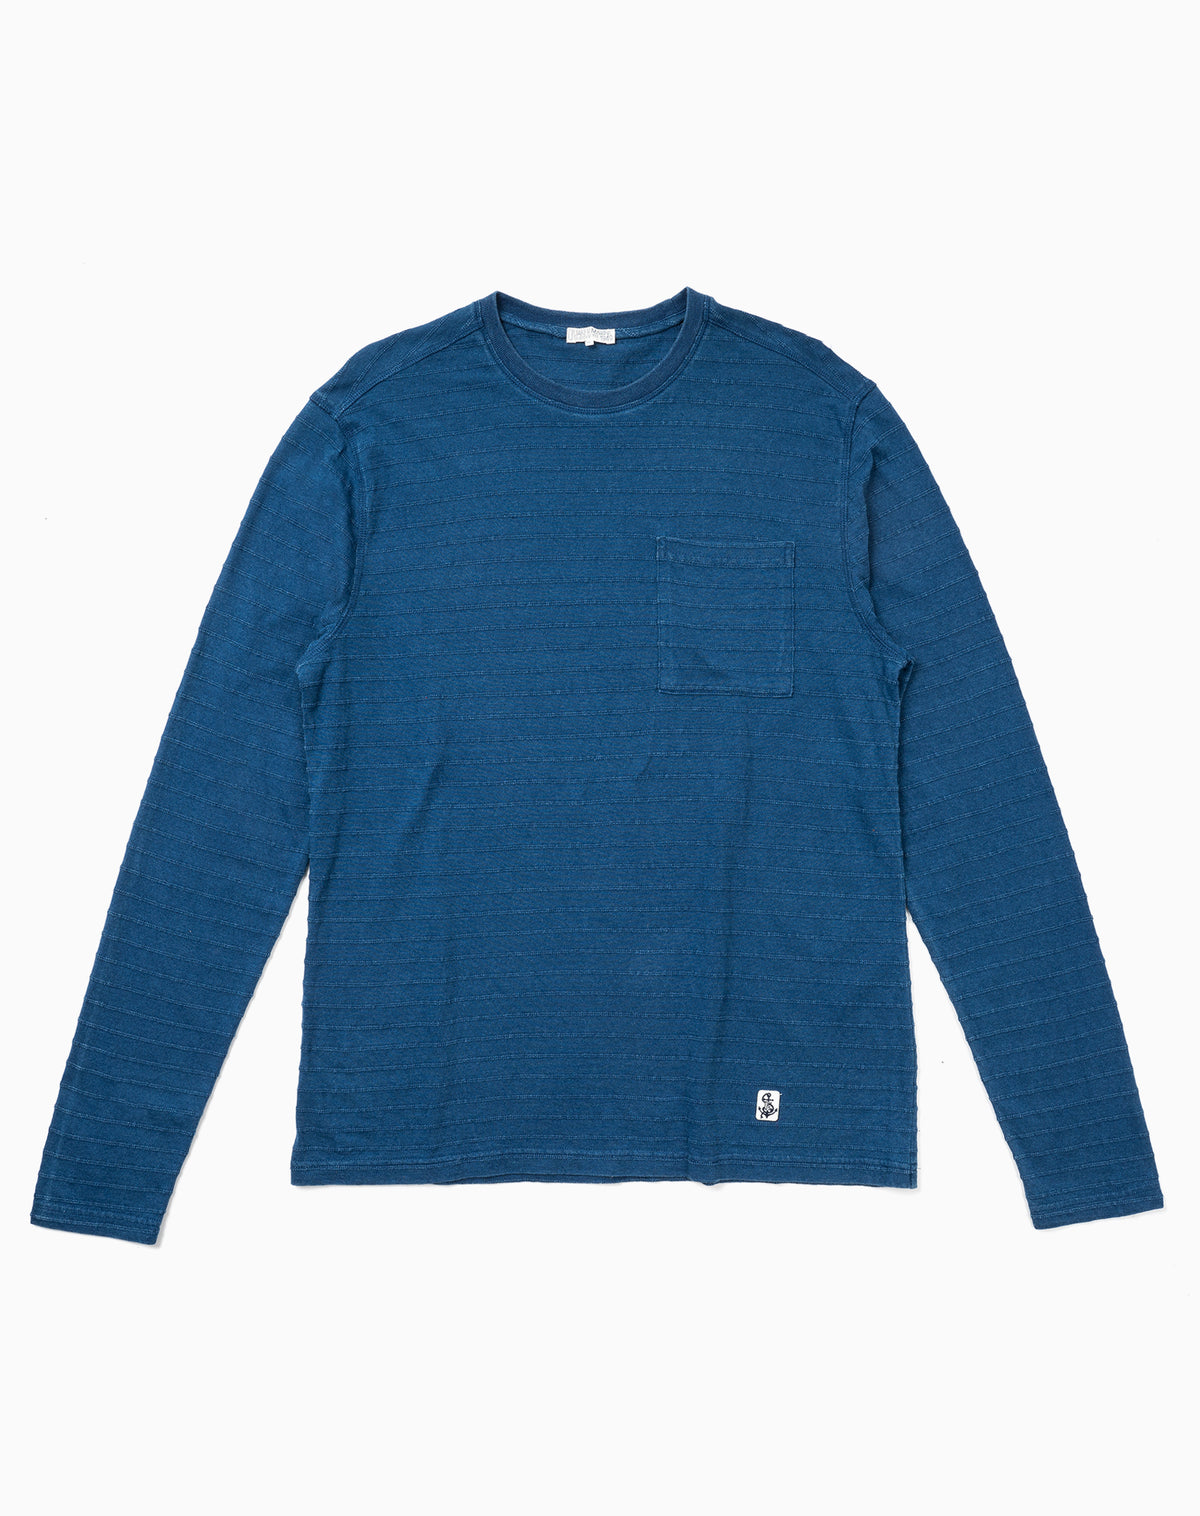 Long Sleeve Indigo Tee in Tonal Jacquard